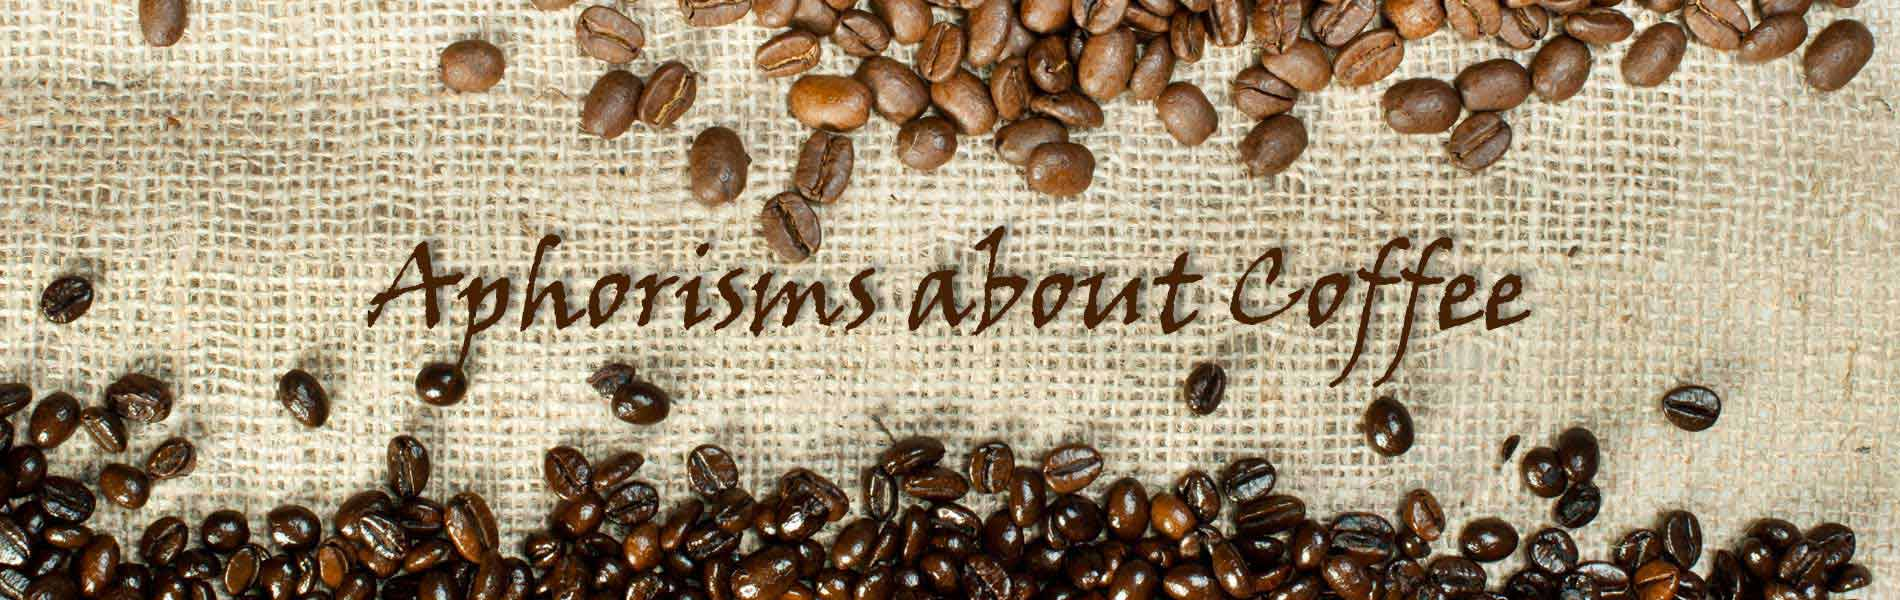 aphorisms about coffee